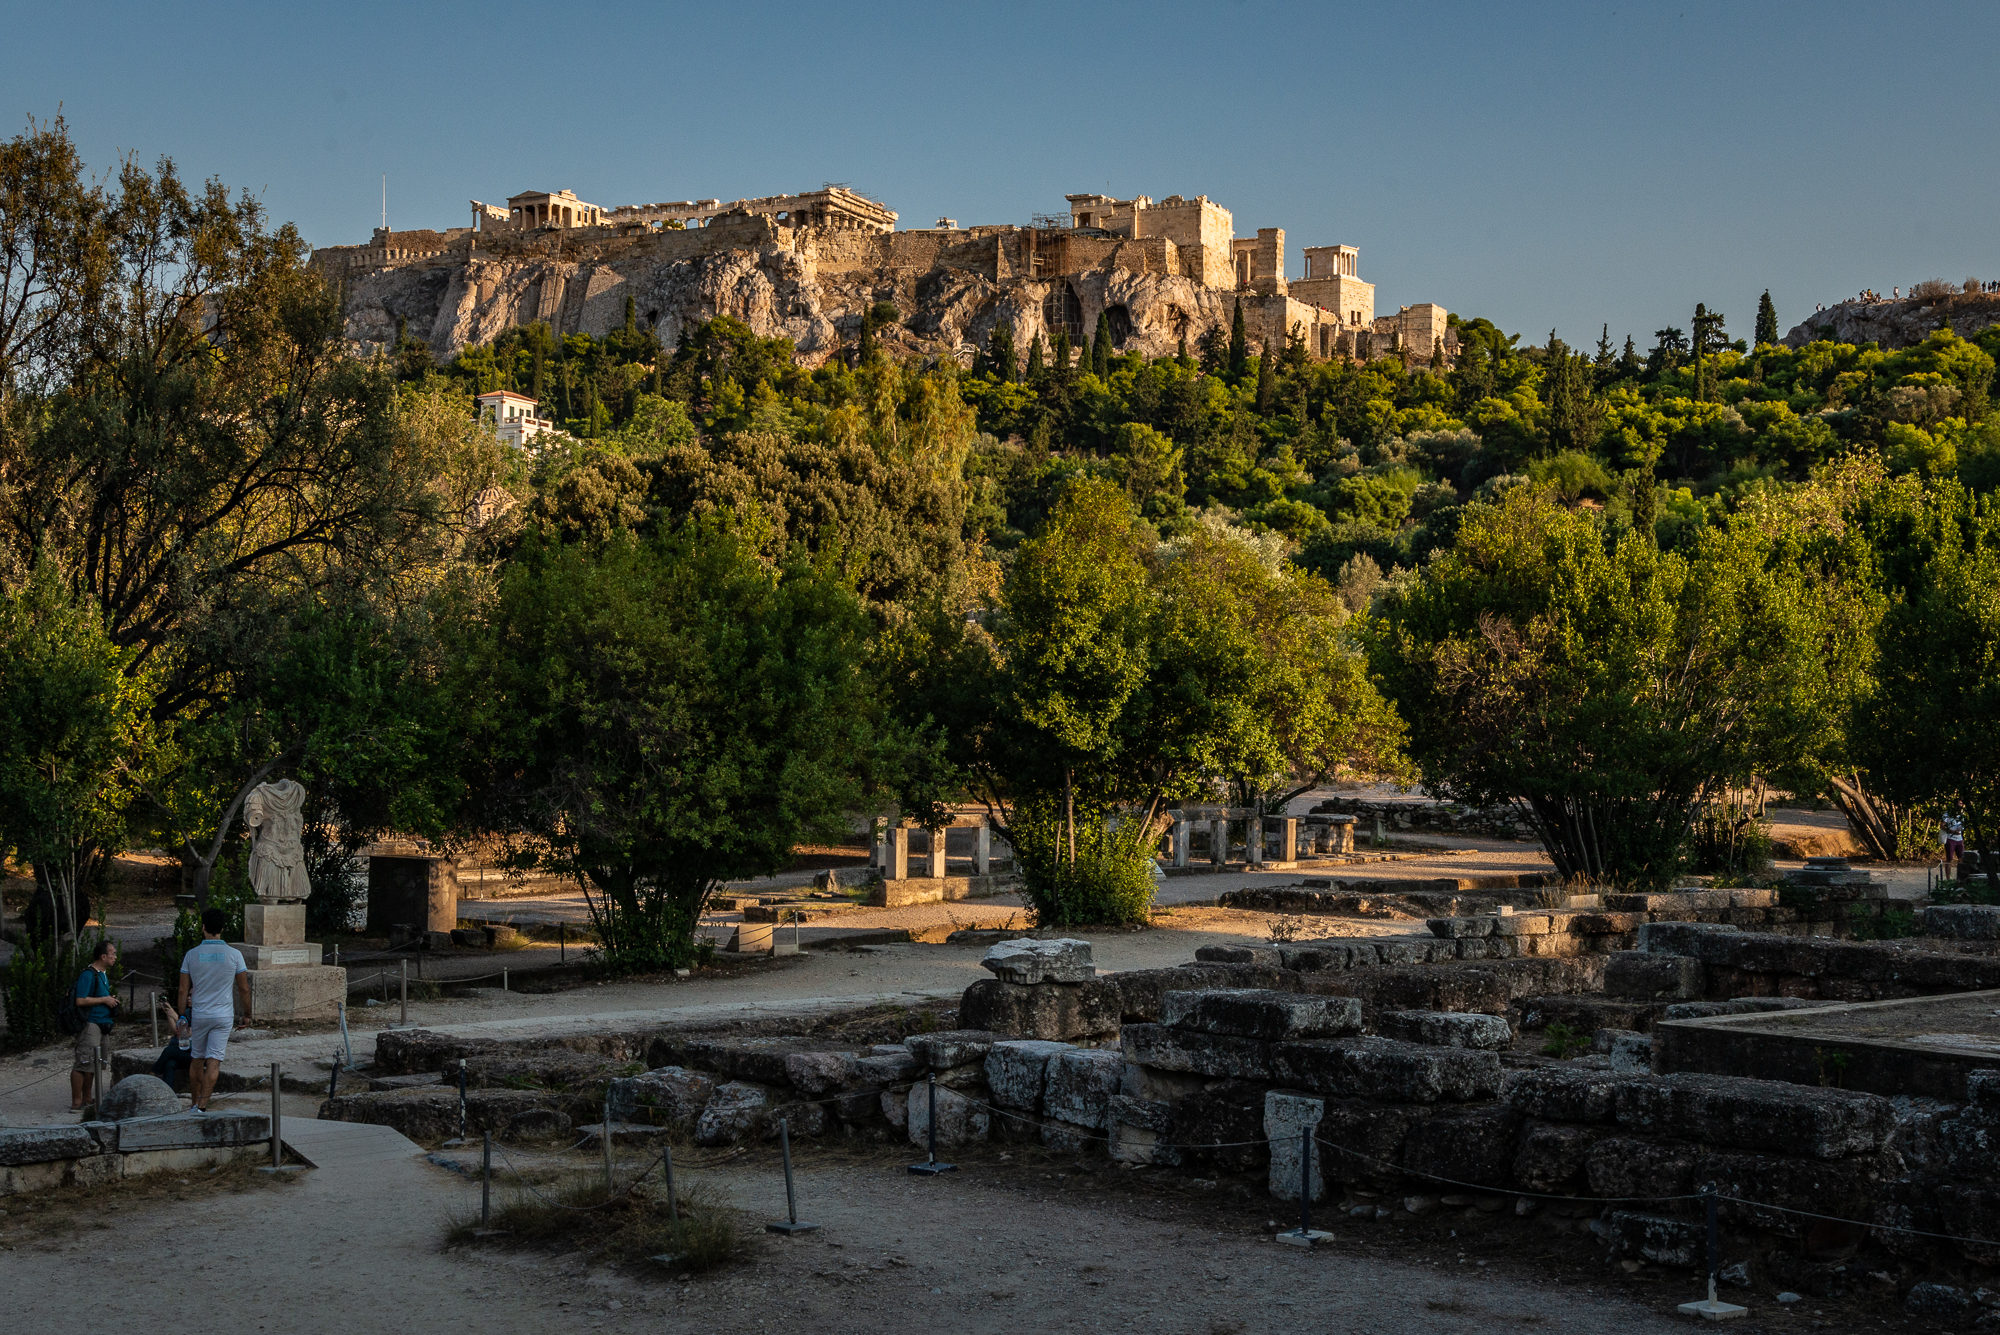 A partial view of the Ancient Agora, with the Parthenon on the Acropolis in the background.